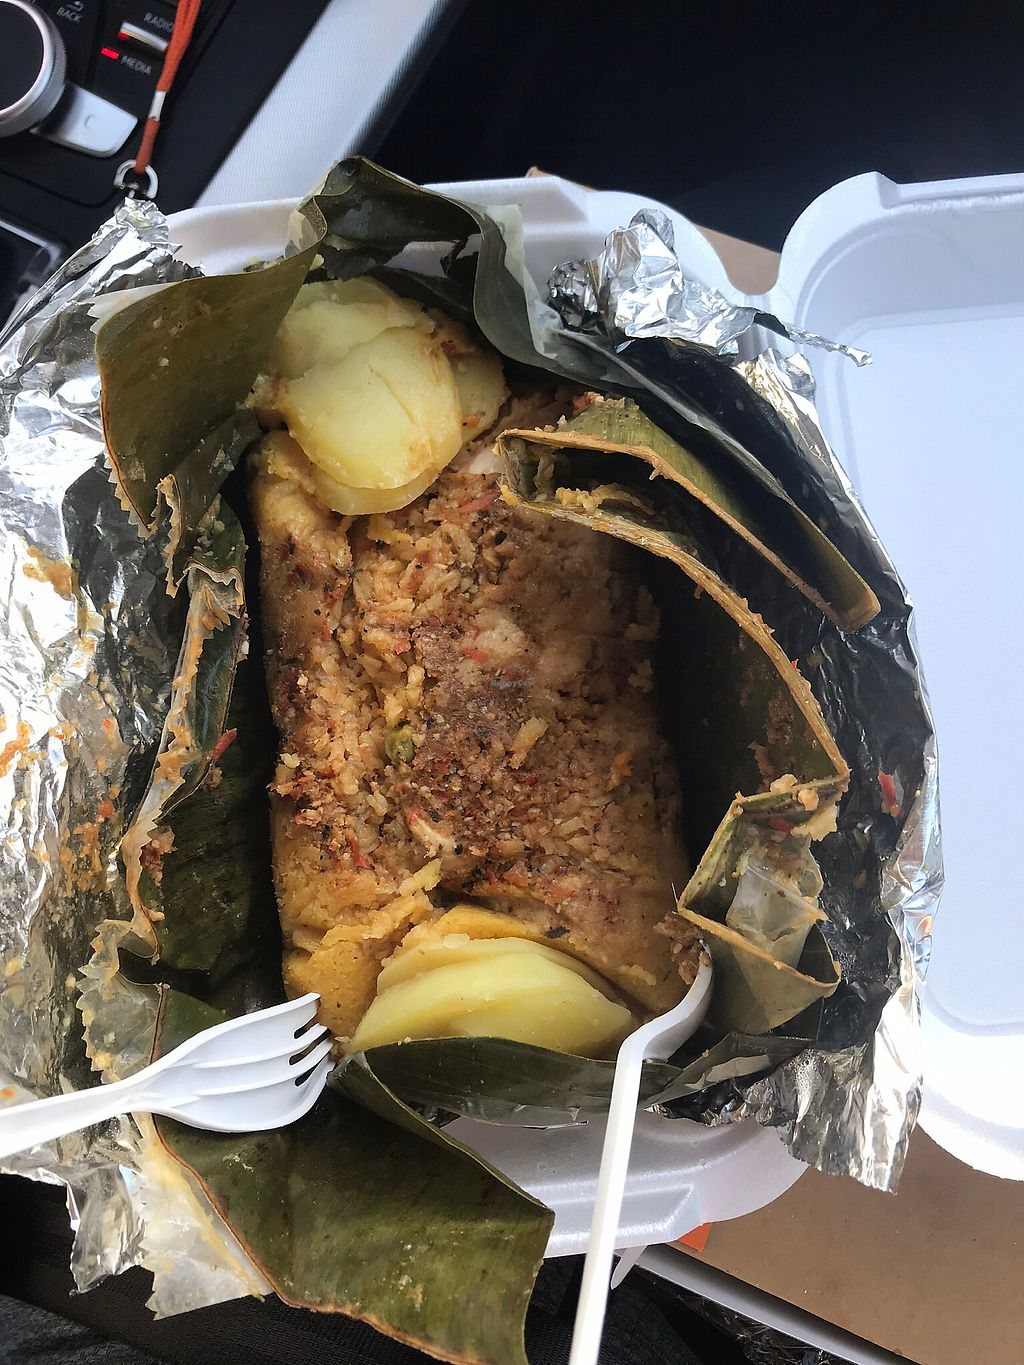 """Photo of The Happy Vegan Bakers  by <a href=""""/members/profile/foolsircle"""">foolsircle</a> <br/>Huge Tamal. Full of rice, vegan chicken, potatoes, etc <br/> March 27, 2018  - <a href='/contact/abuse/image/98276/376679'>Report</a>"""